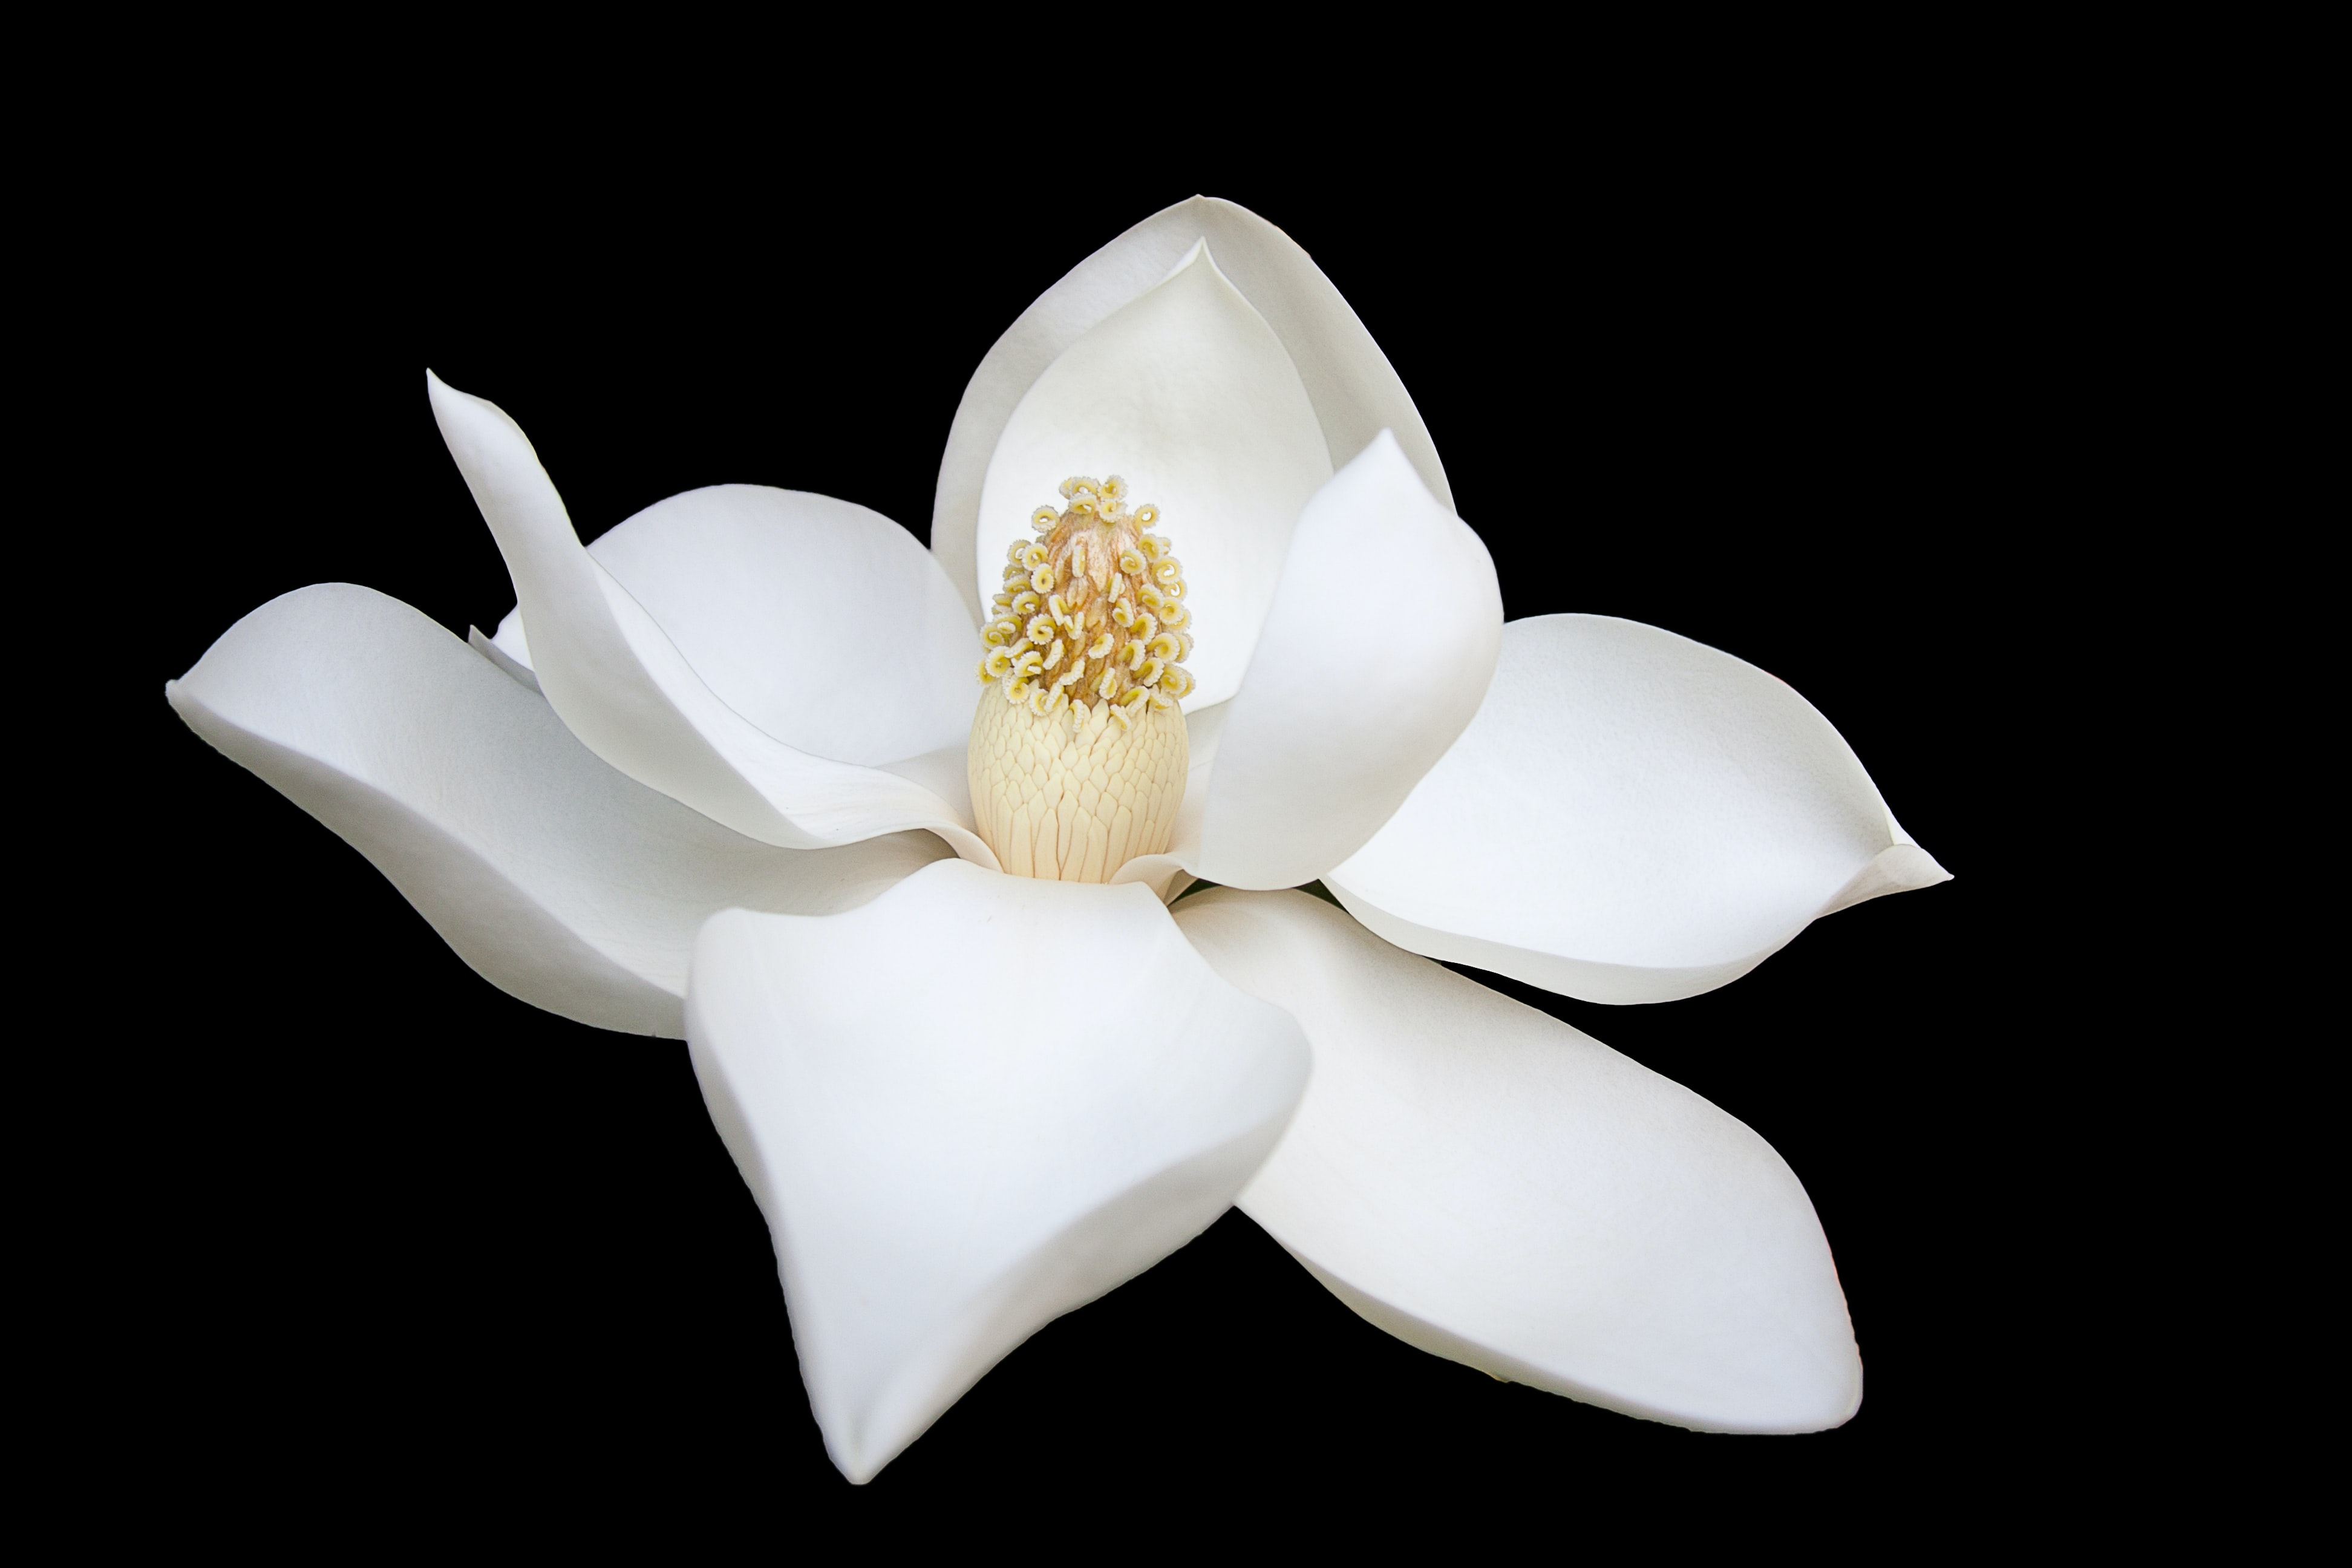 closeup photo of white petaled flower